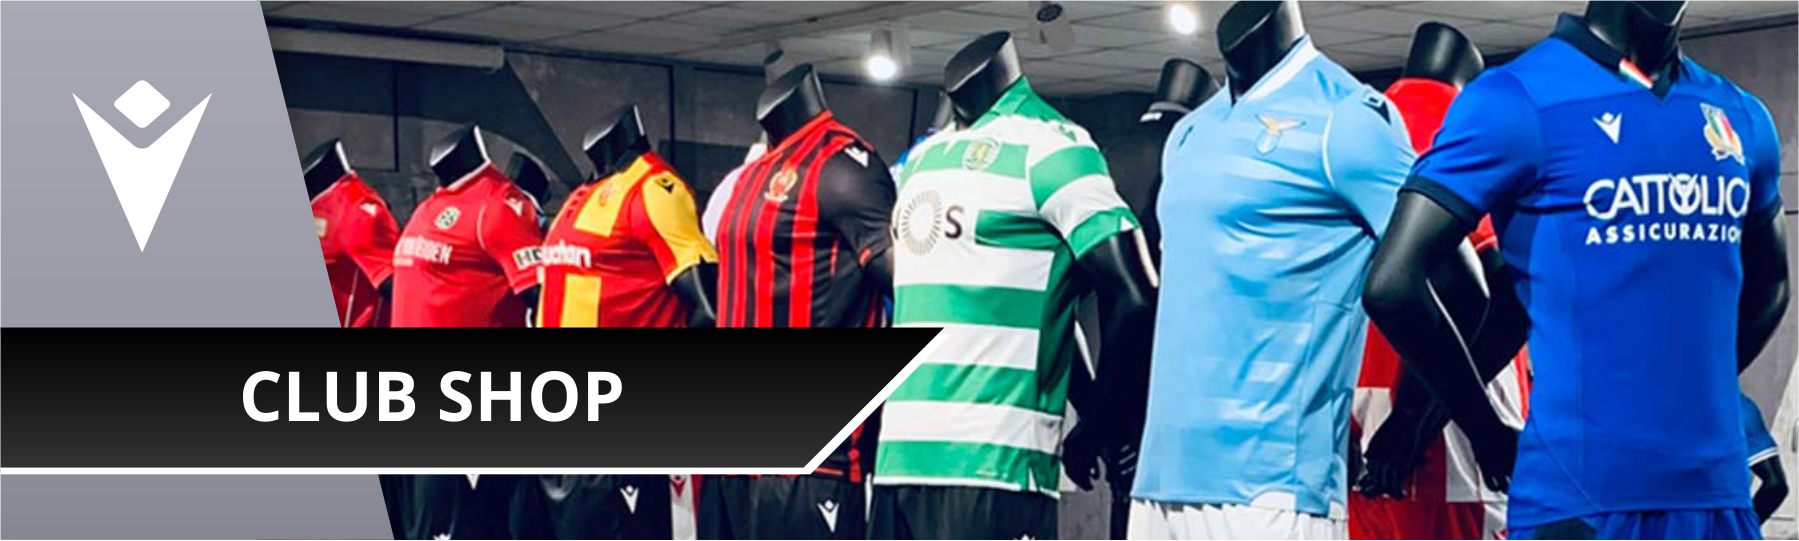 club-shop-banner-new.png